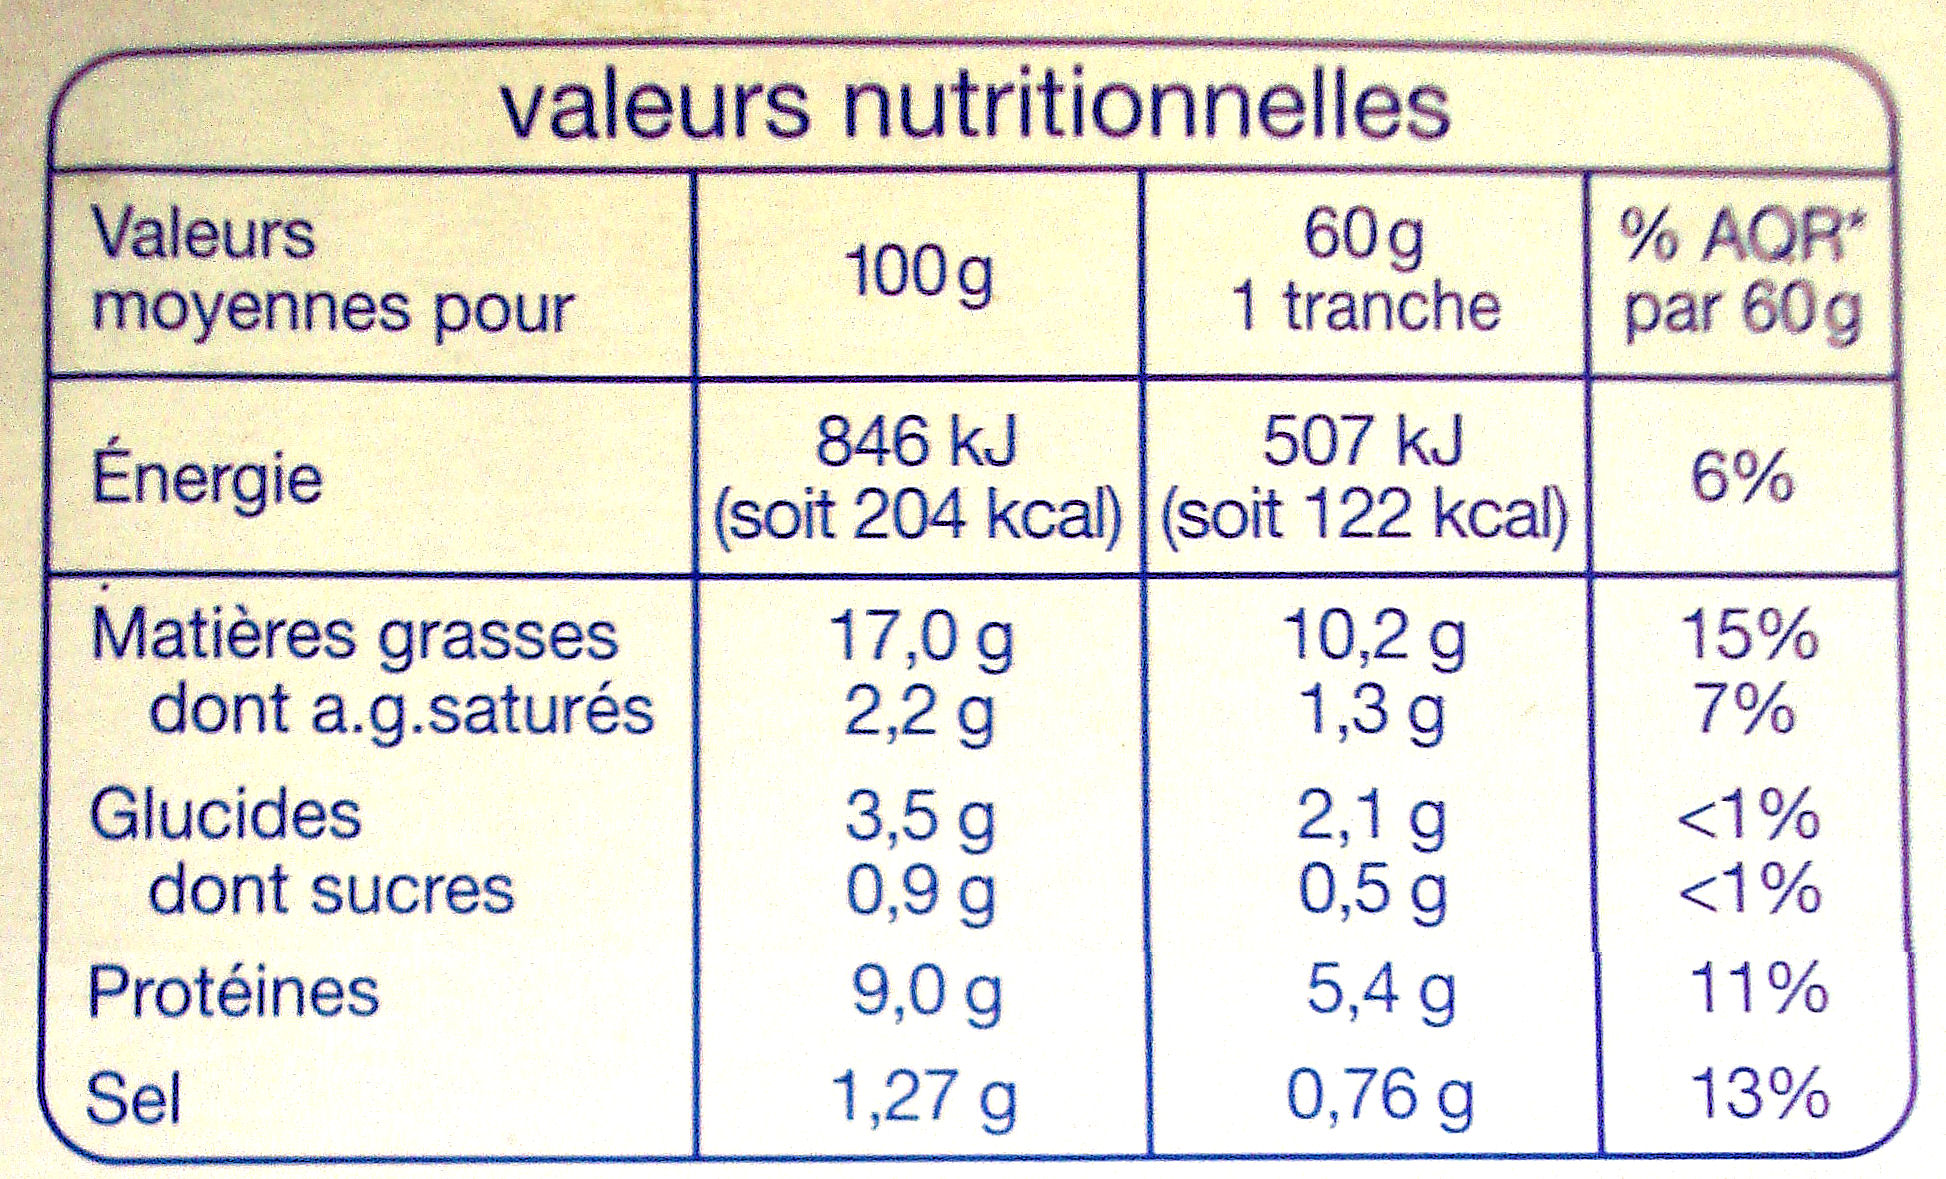 tableau nutritionnel INCO